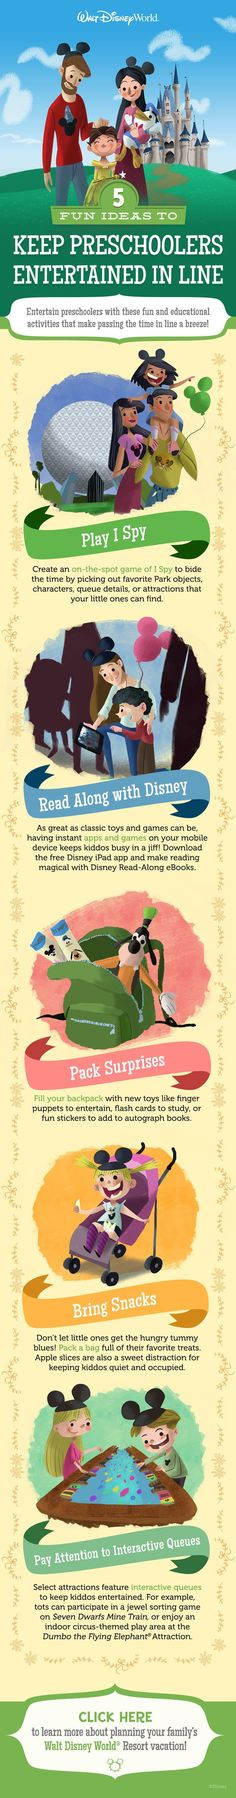 5 Fun Ideas to Keep Preschoolers Entertained in Line at Walt Disney World!